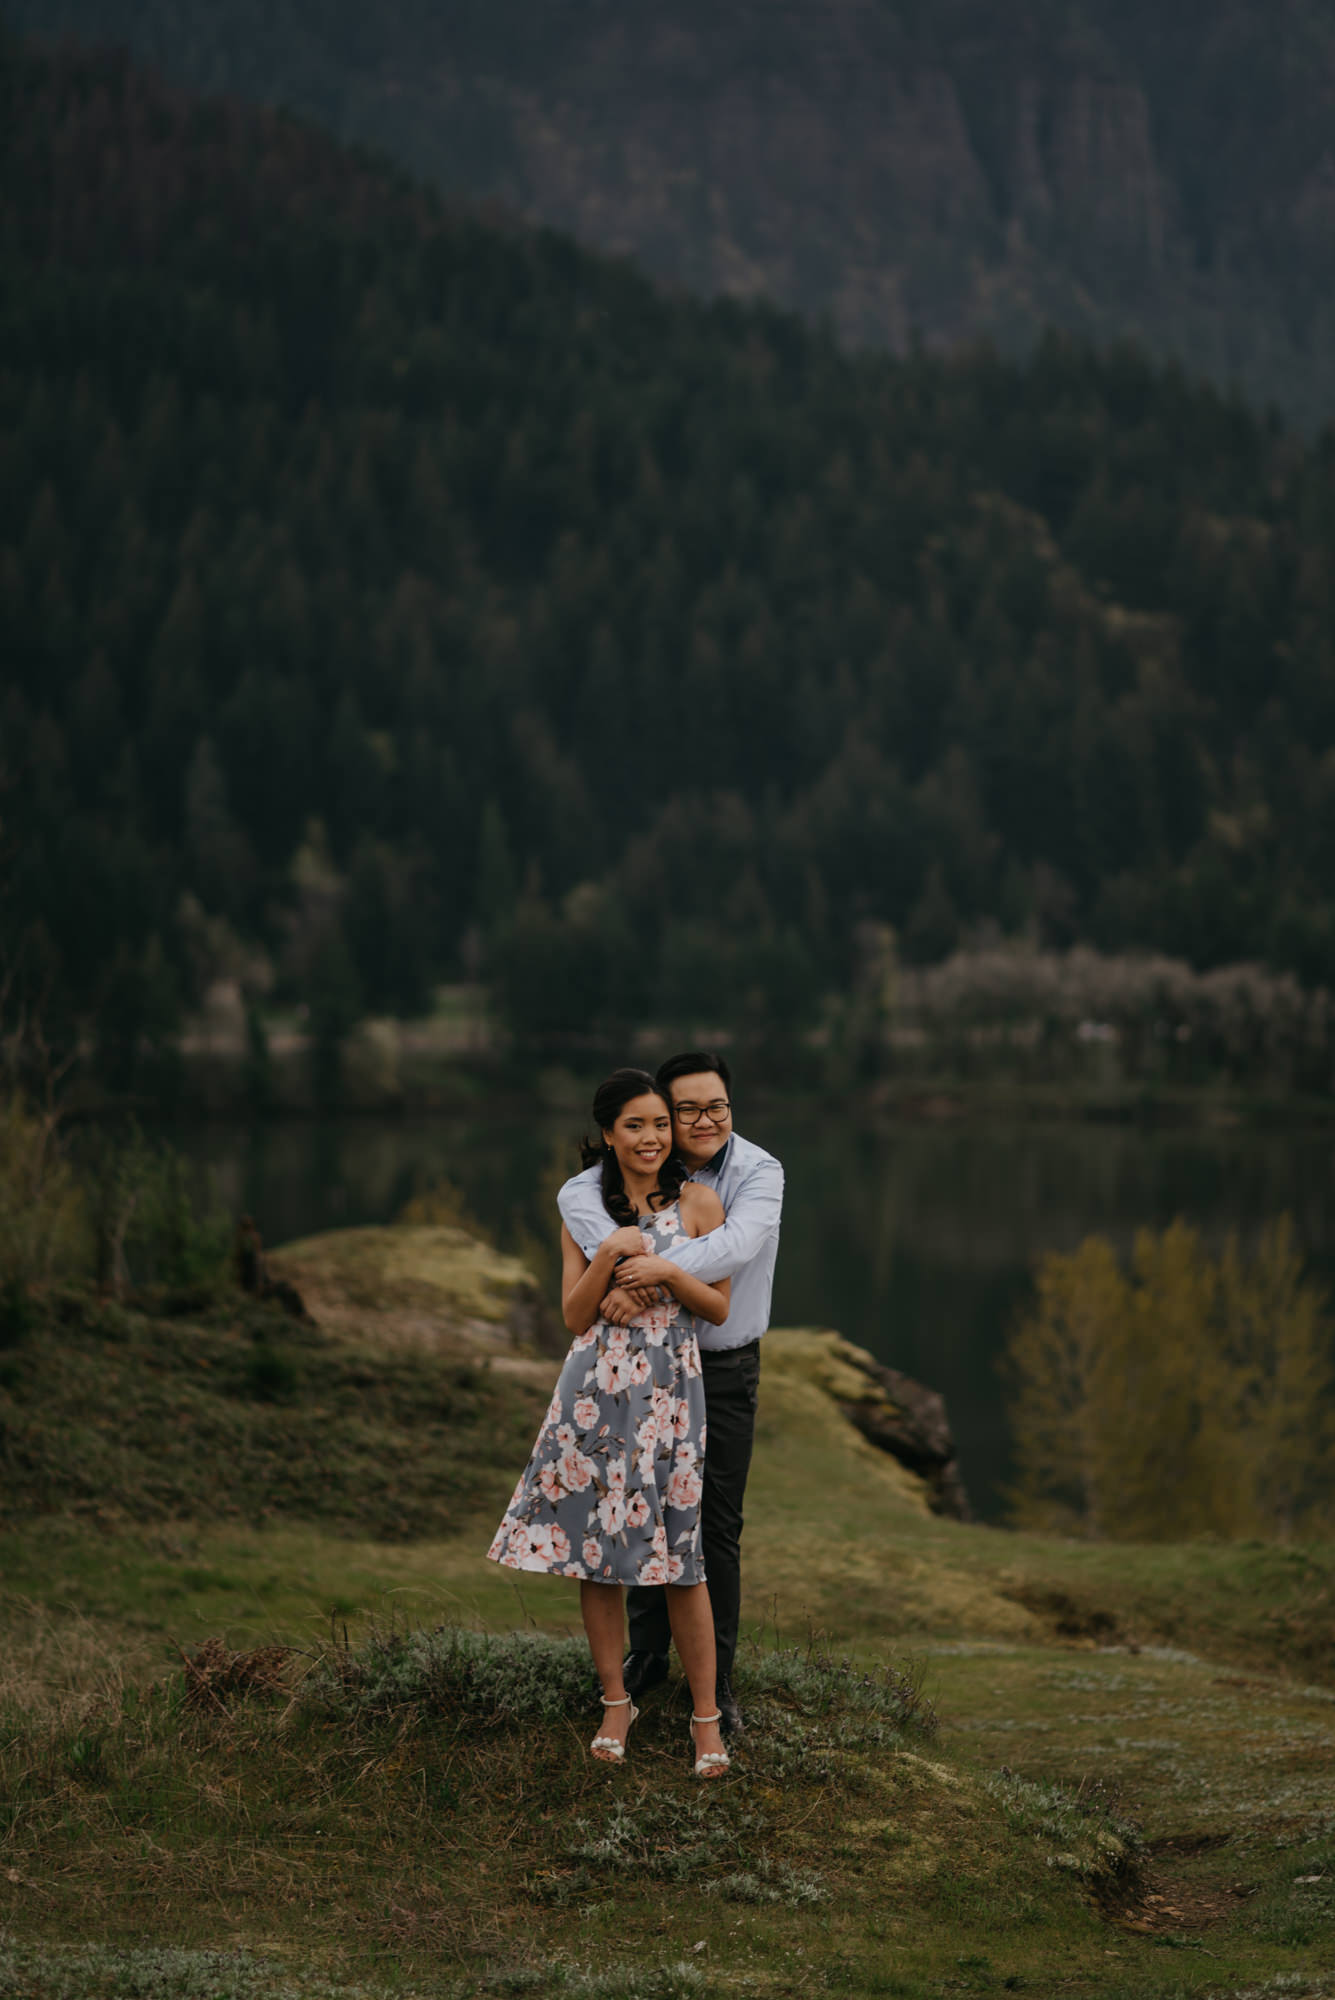 cascade-locks-engagement-cloudy-fun-sunset-4468.jpg